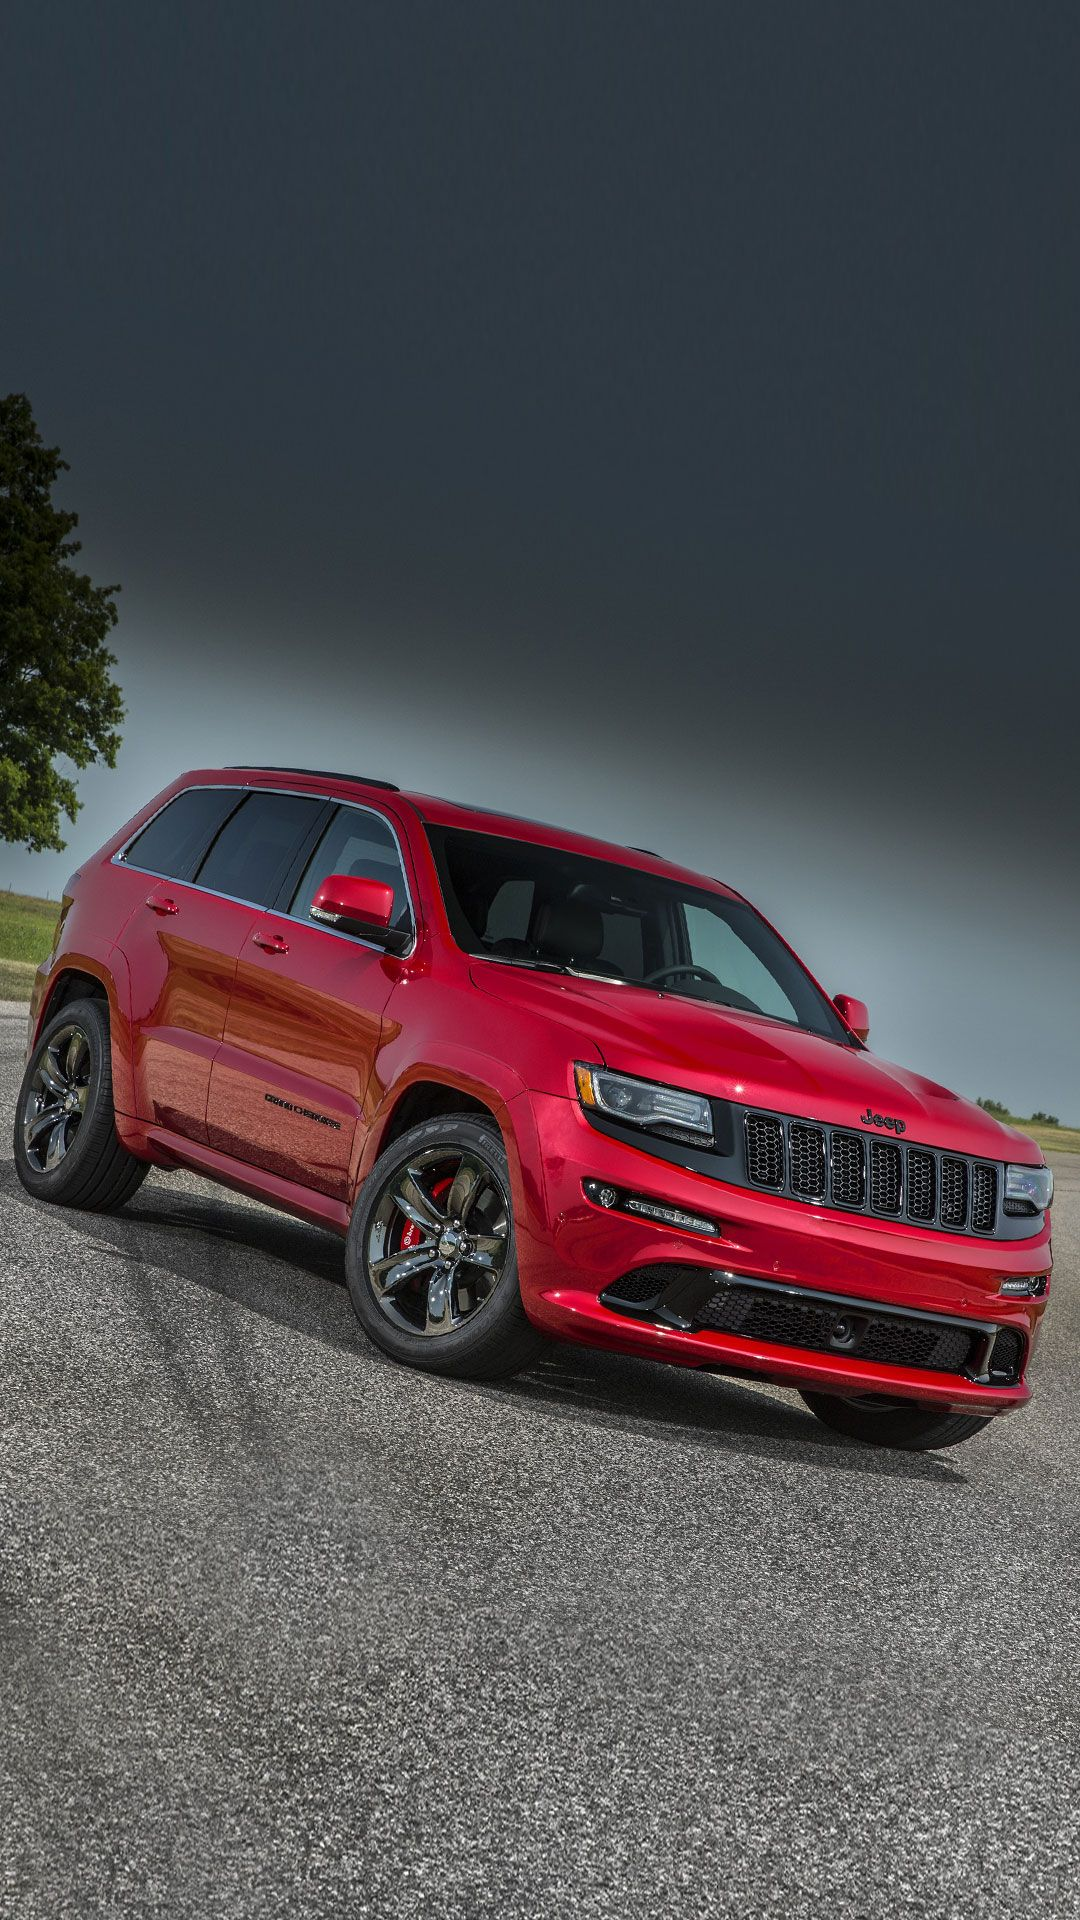 Jeep Grand Cherokee Wallpaper Iphone